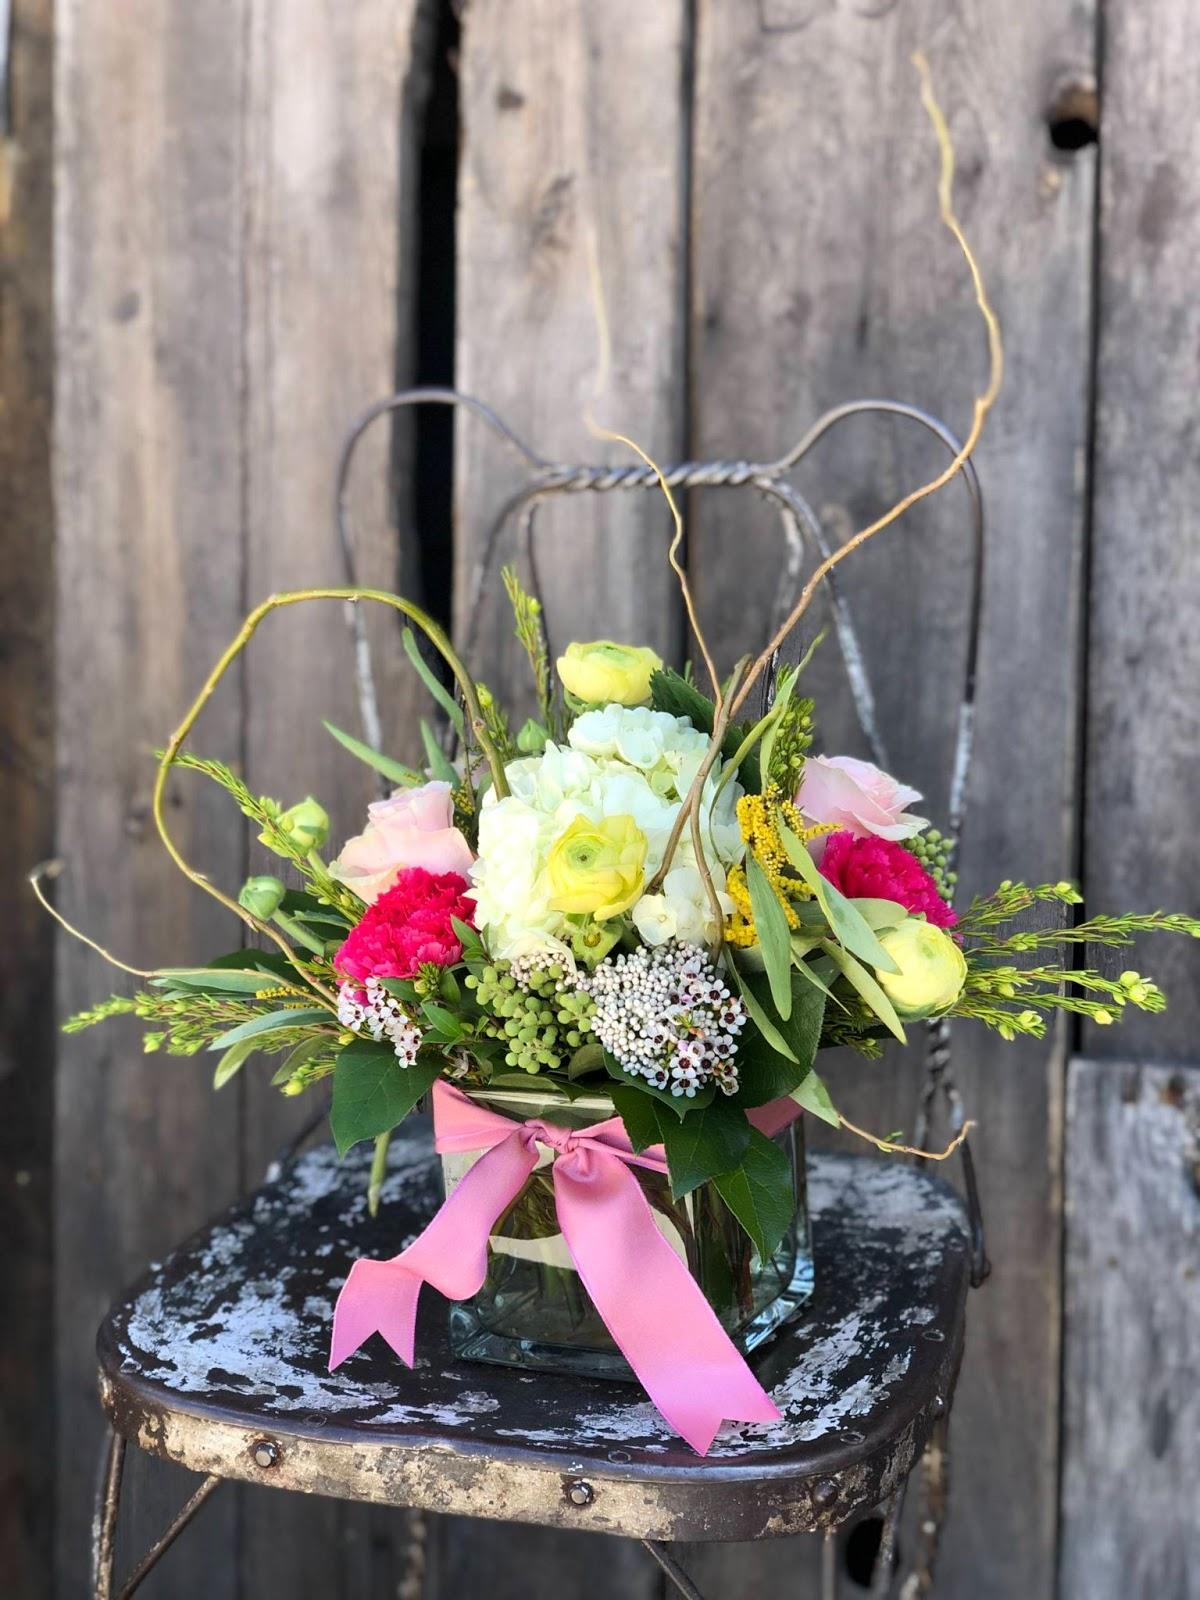 Special Occasion Arrangement from Every Blooming Thing, Mother's Day gift guide